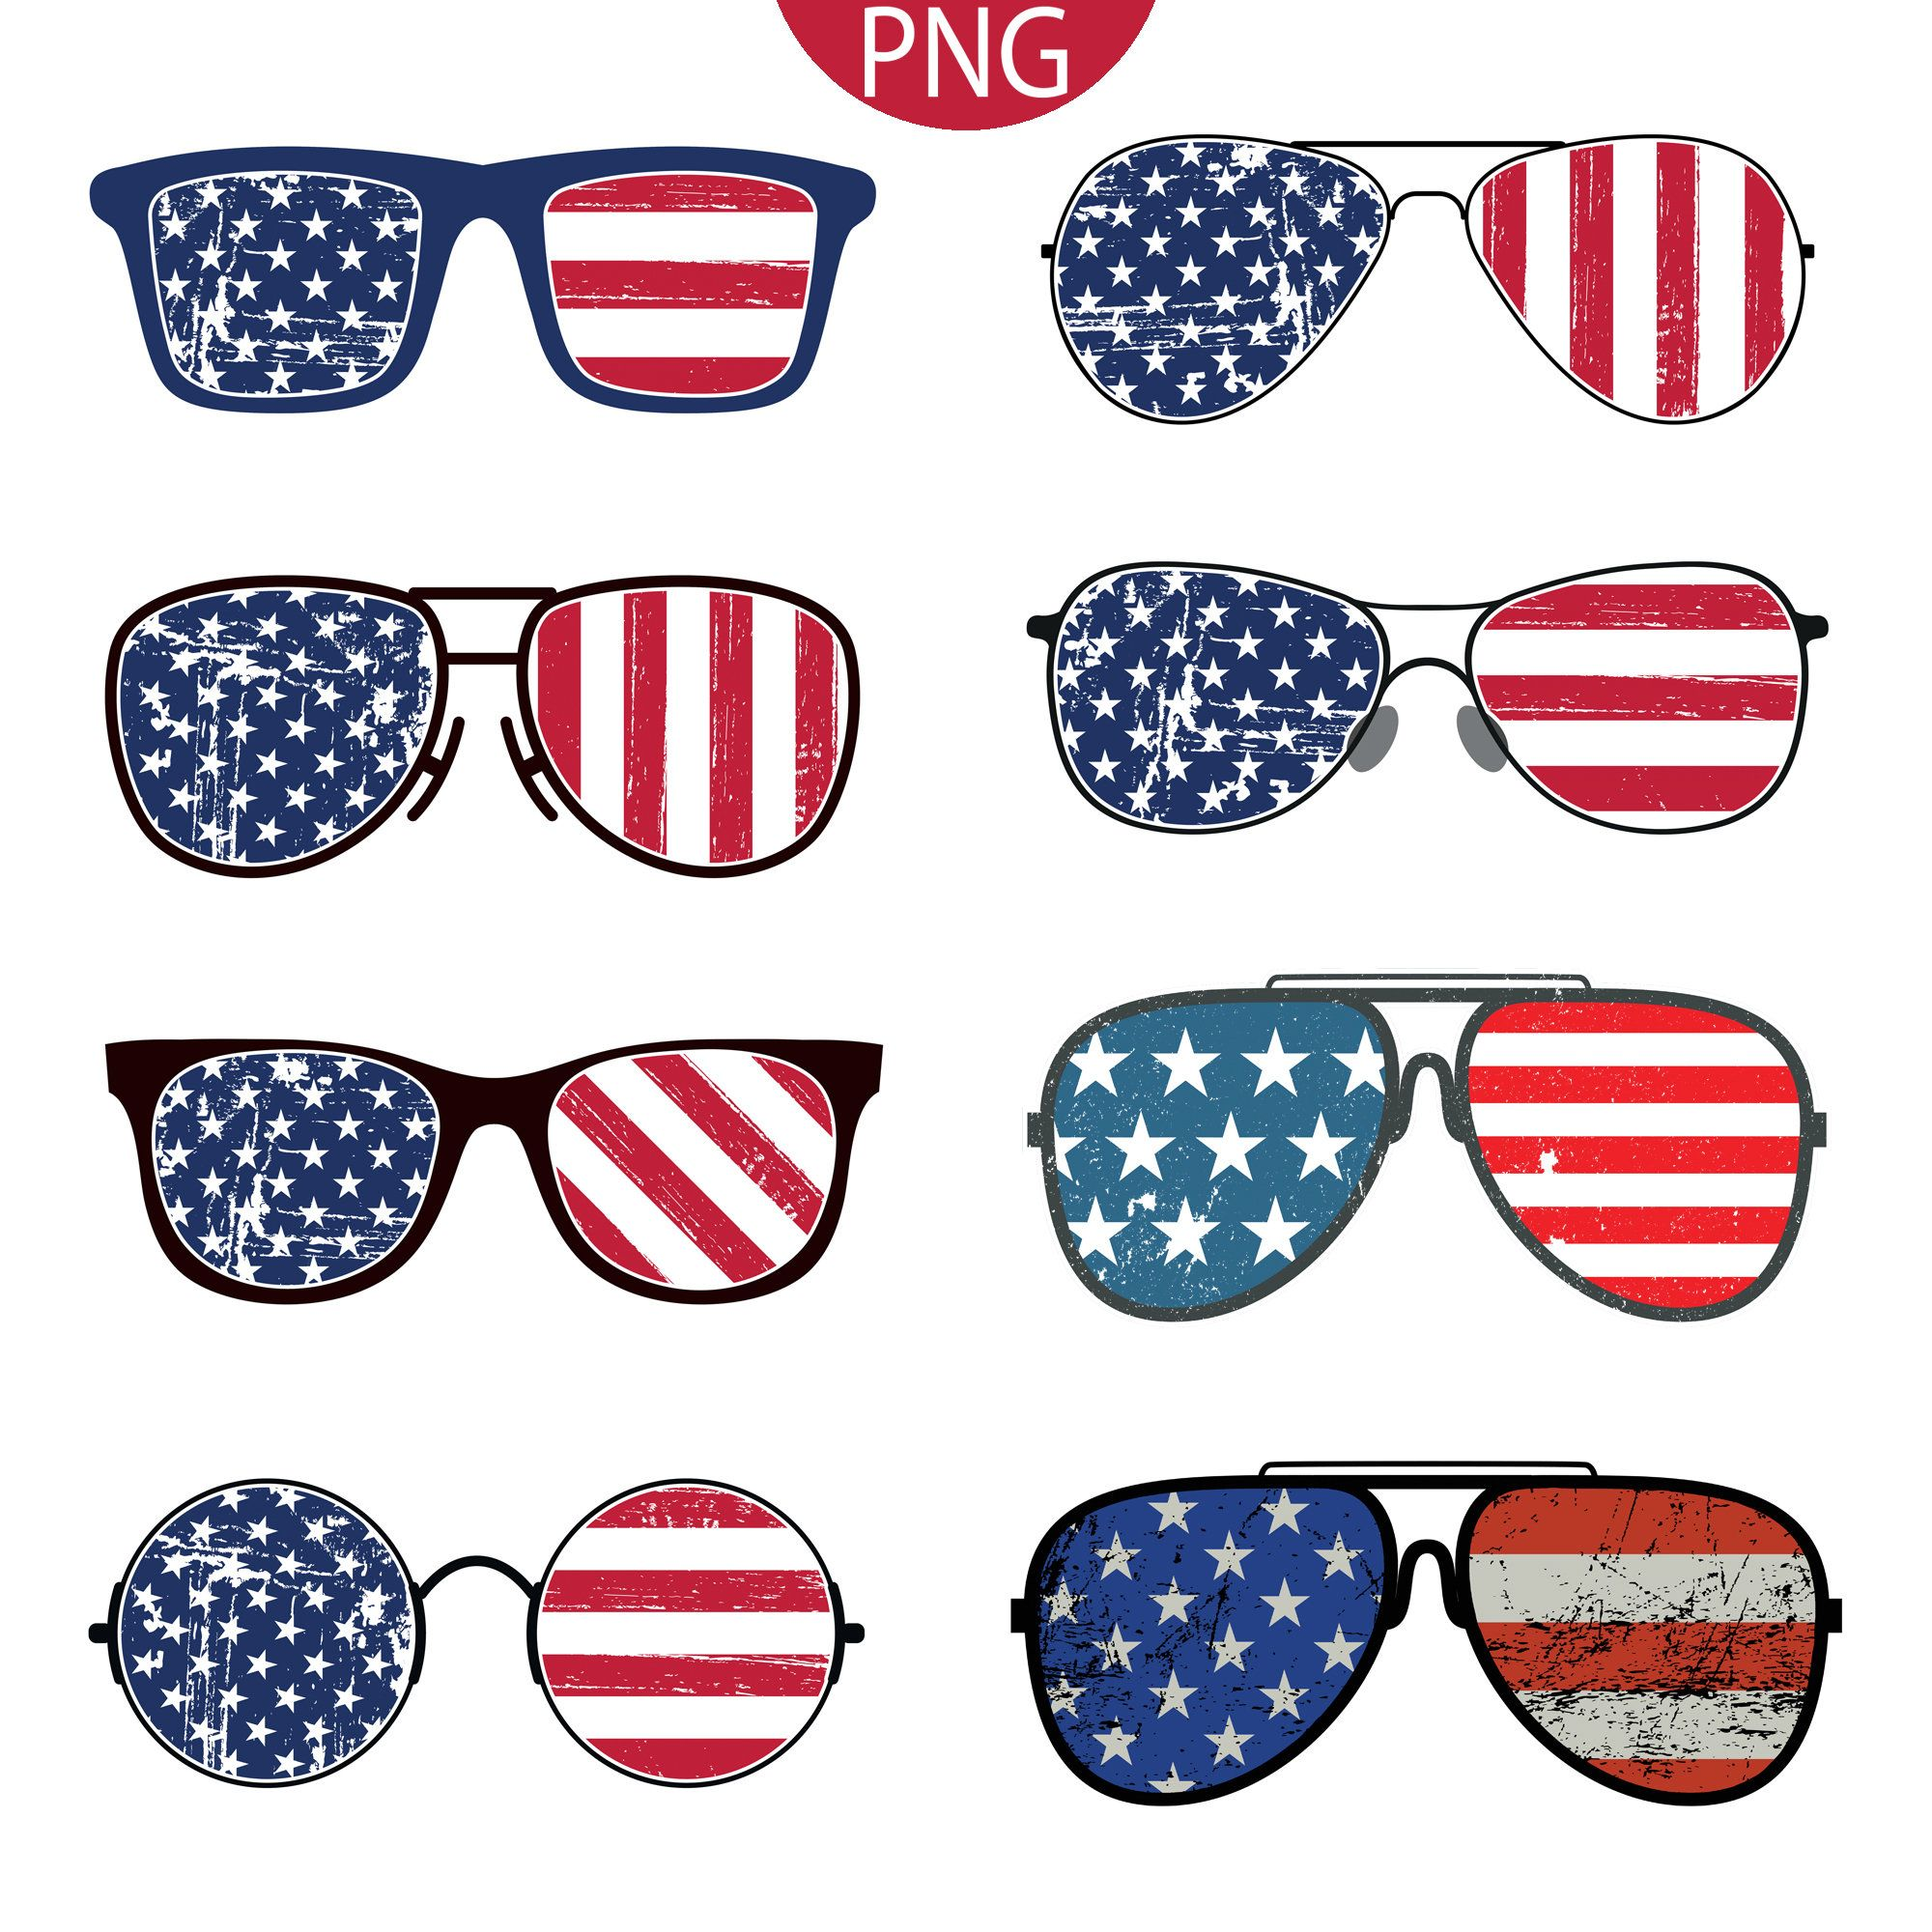 American Flag Sunglasses Multi Pack 8 Png Files Patriotic 4th Of July Usa Commercial Use Transparent Clipart In 2020 American Flag Clip Art American Flag Sunglasses